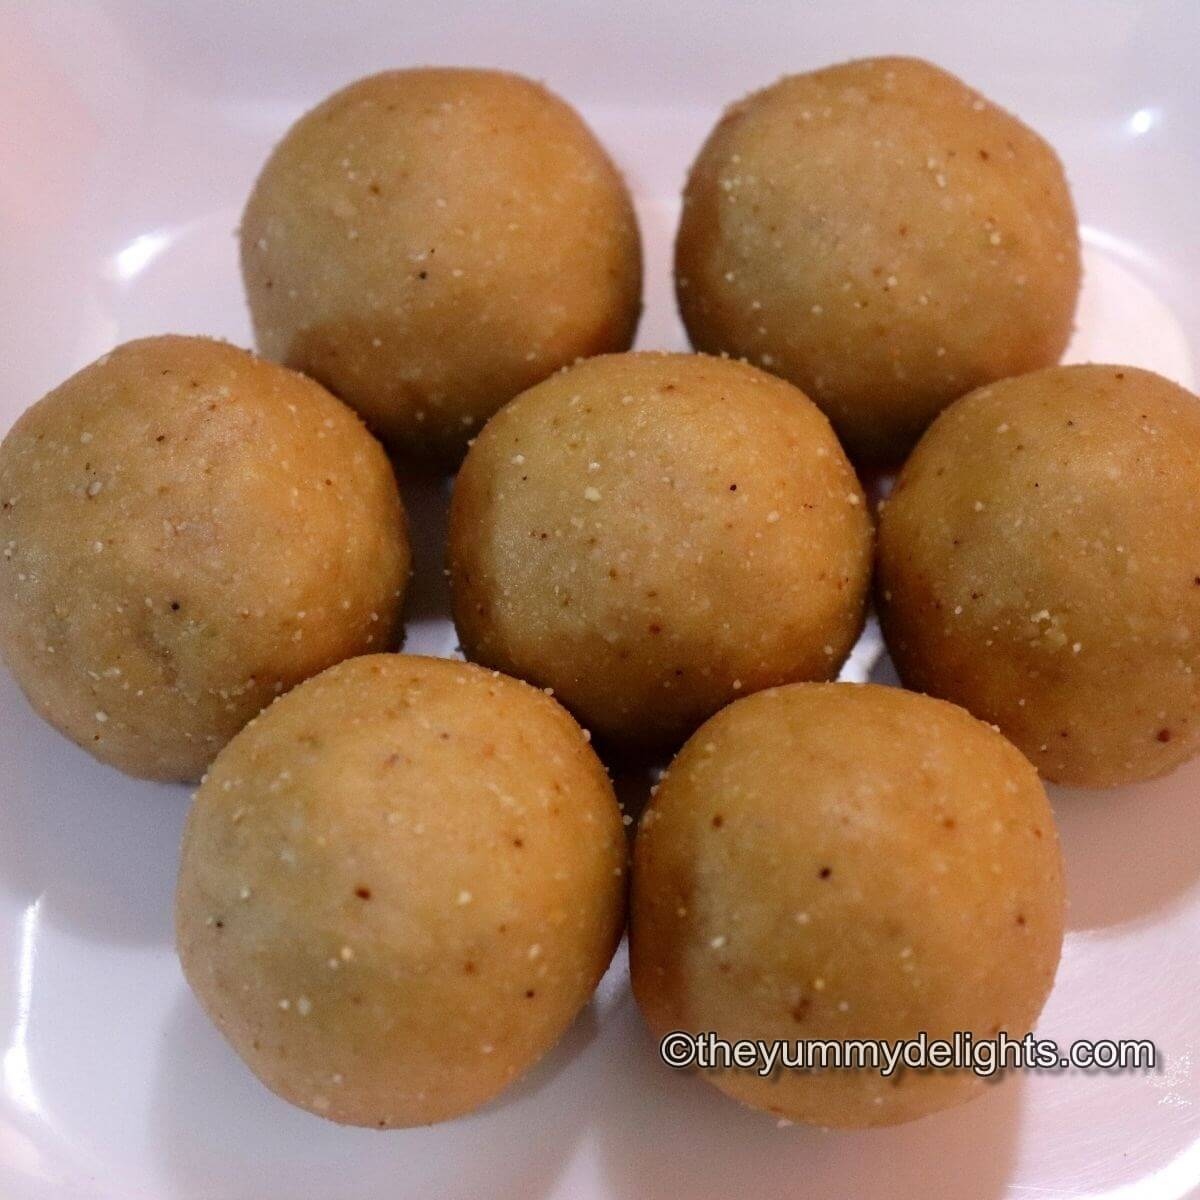 Peanut ladoos placed on a white plate.